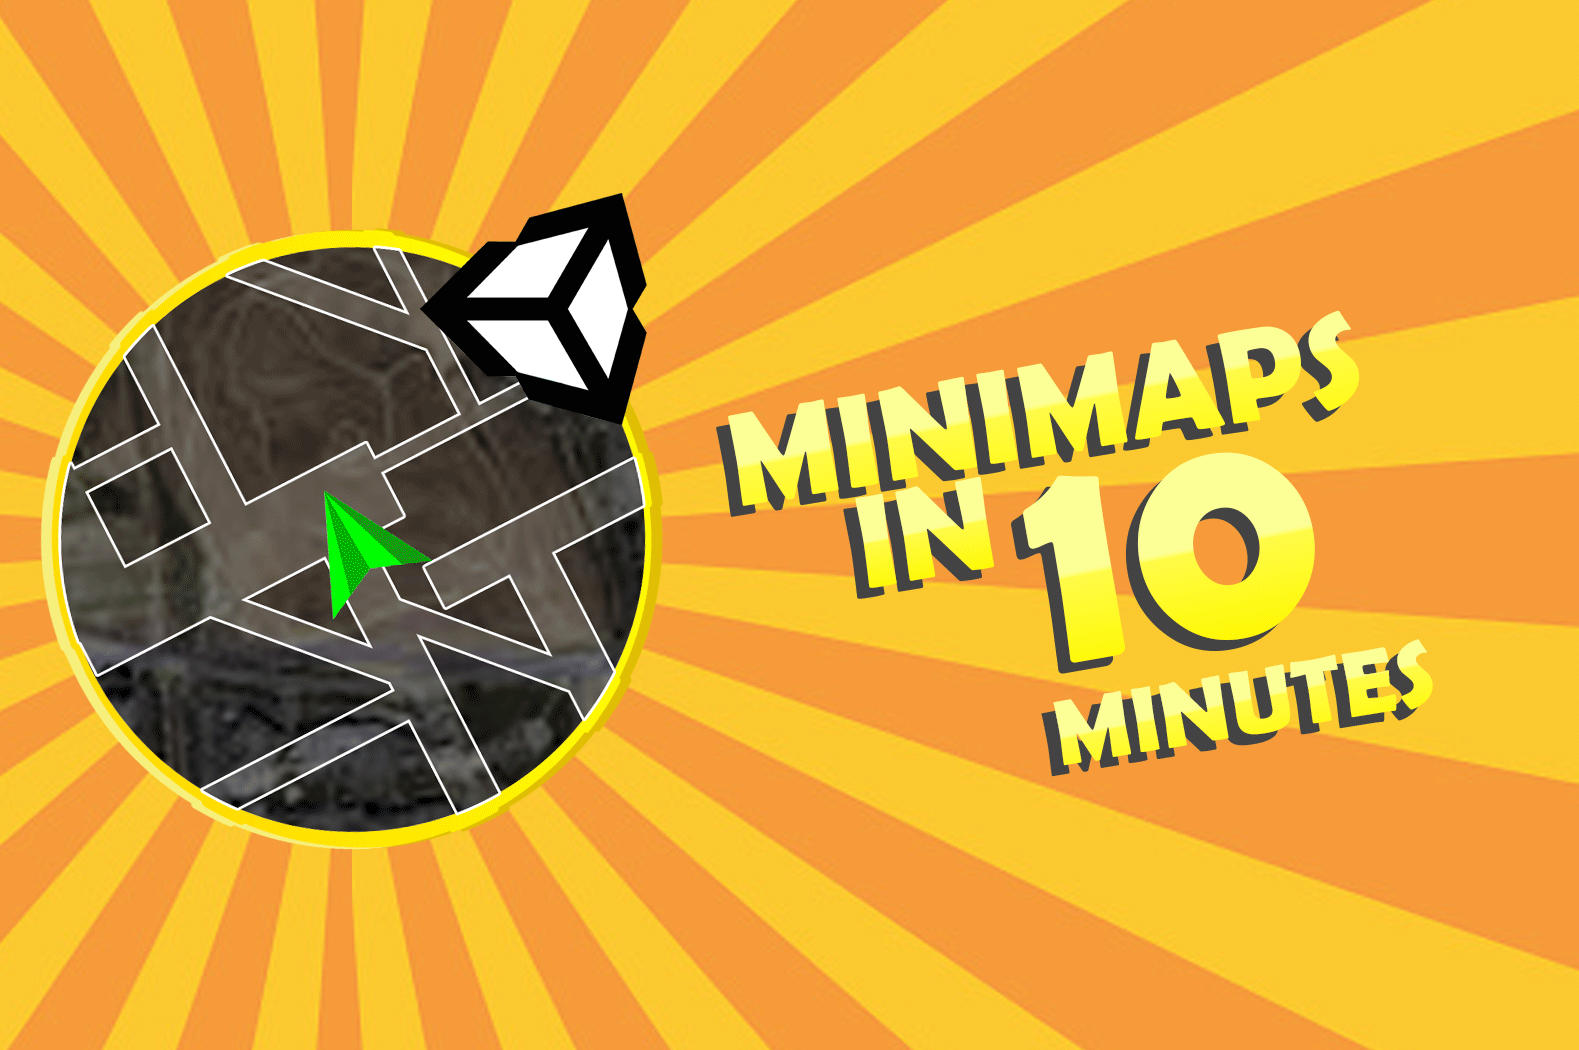 Unity Tutorials: How to make a MINIMAP in 10 Minutes